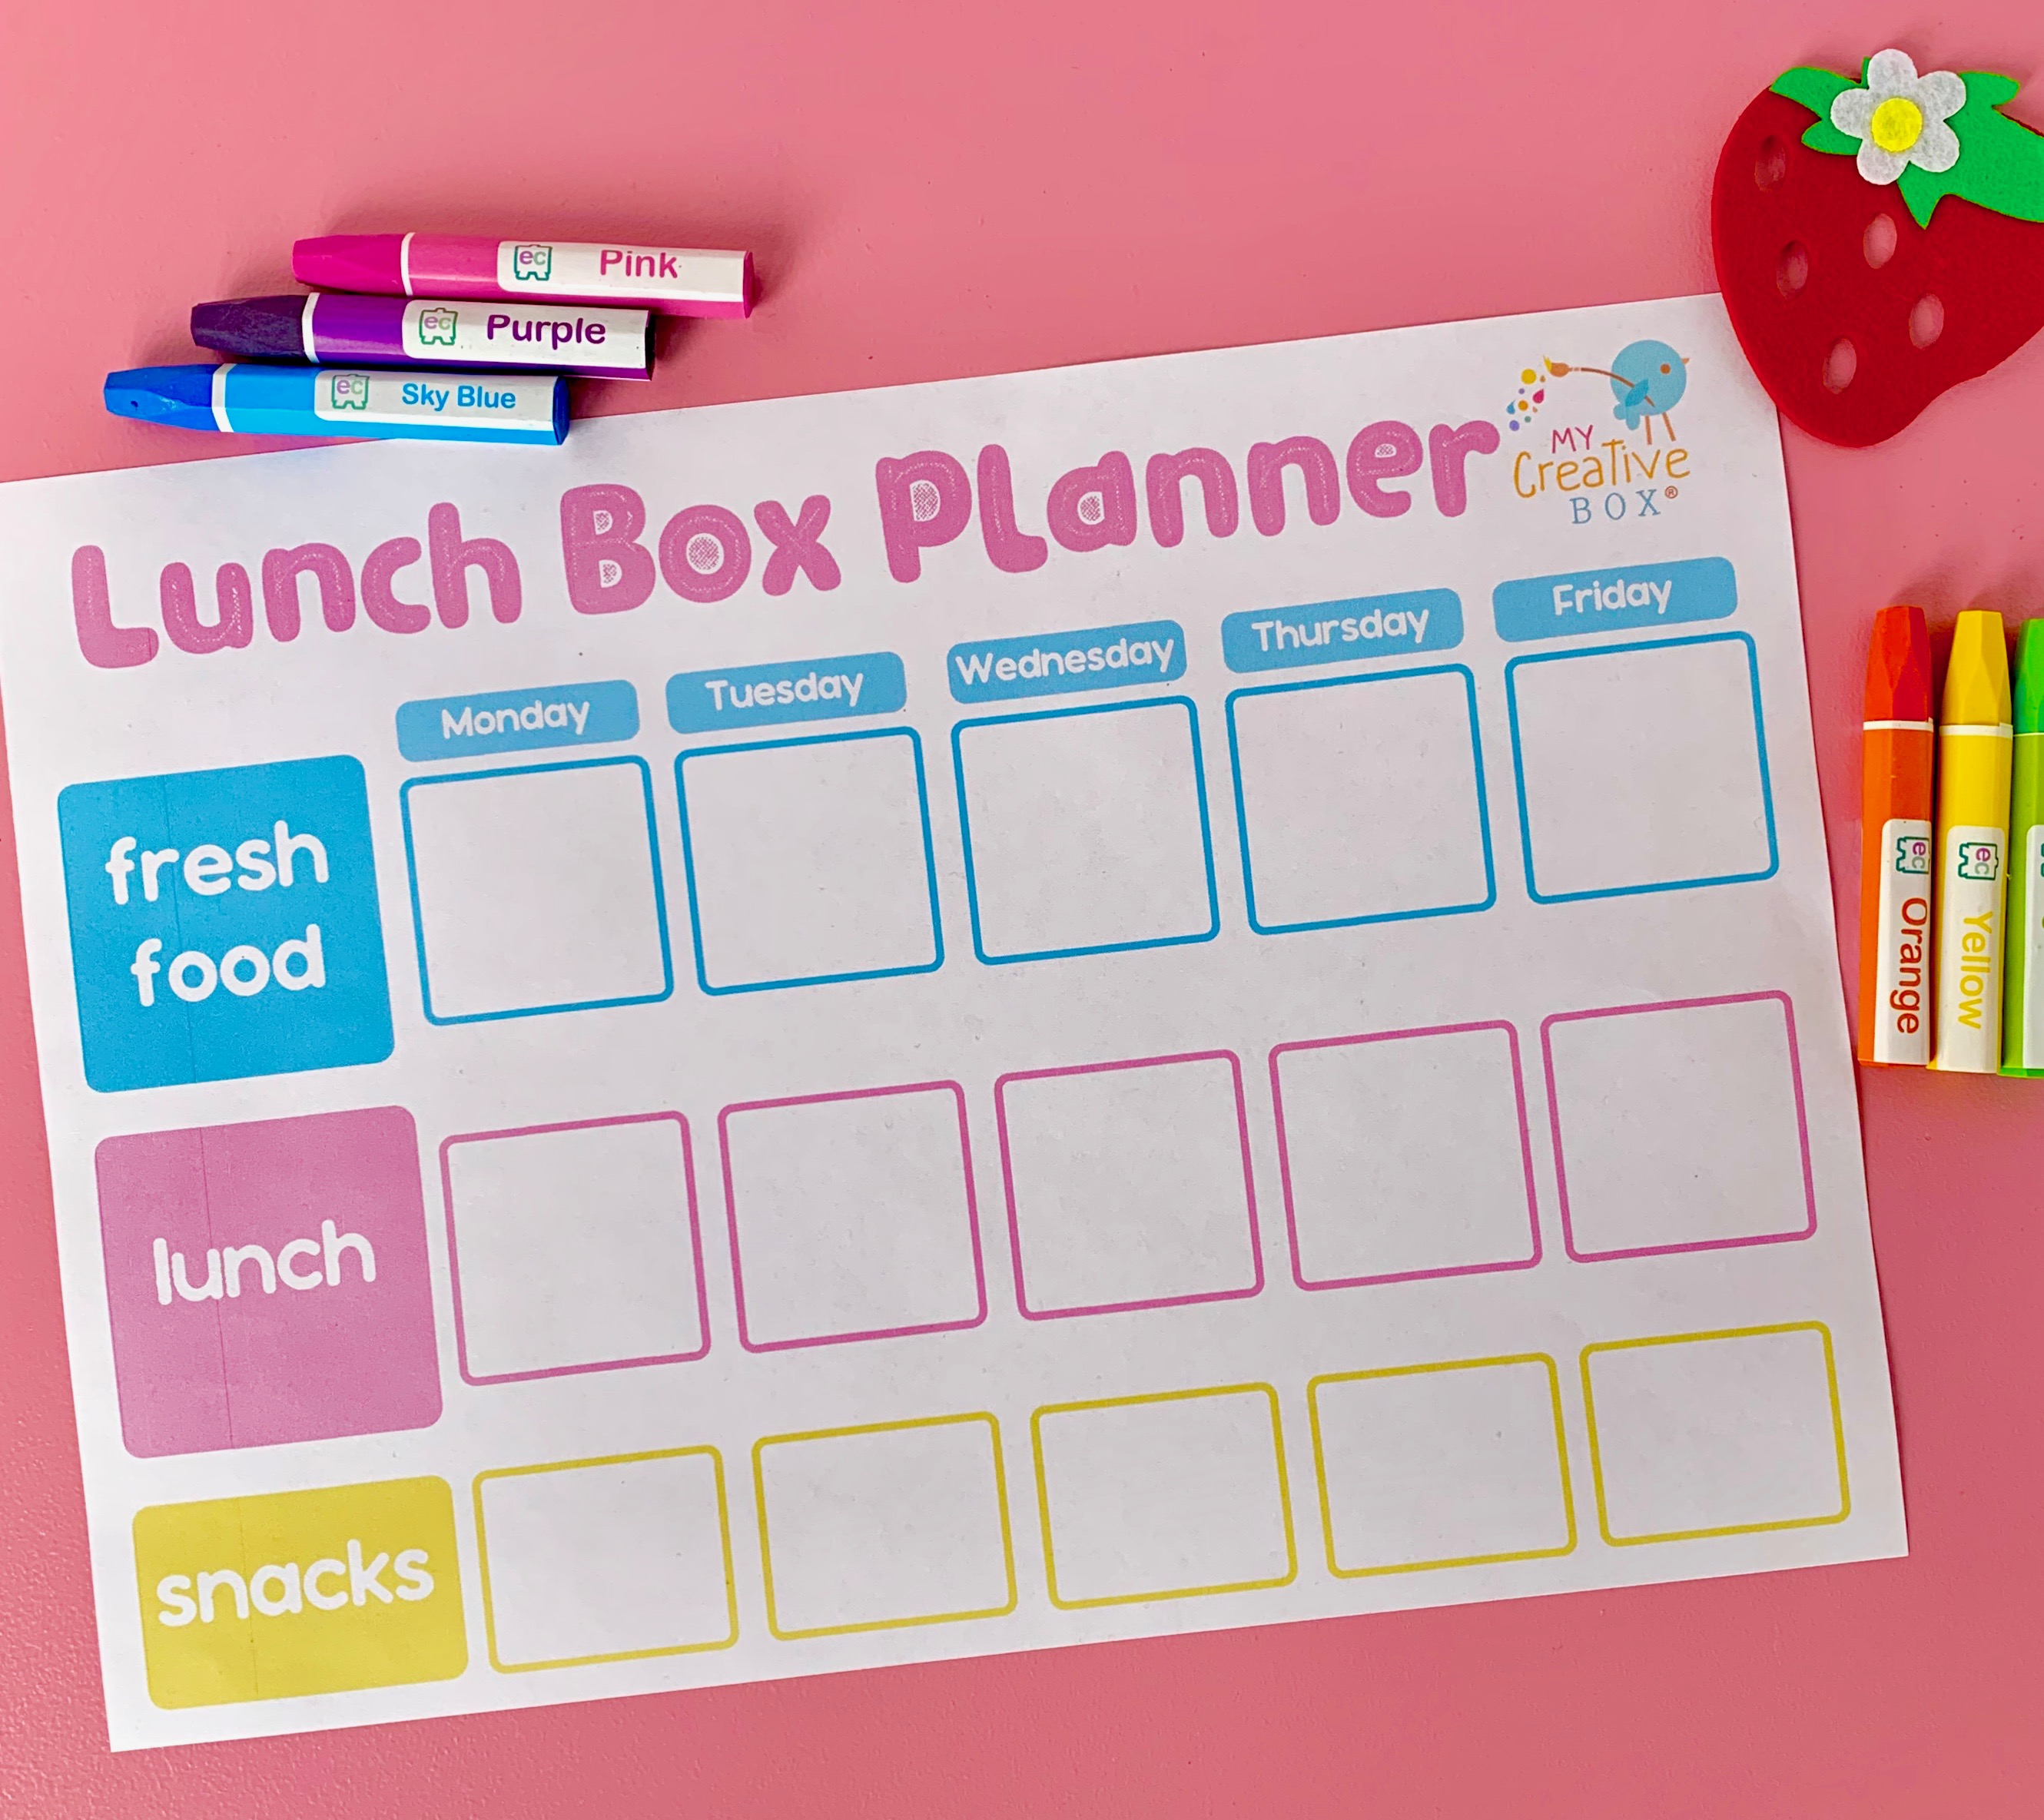 My Creative Box Lunch Box Planner